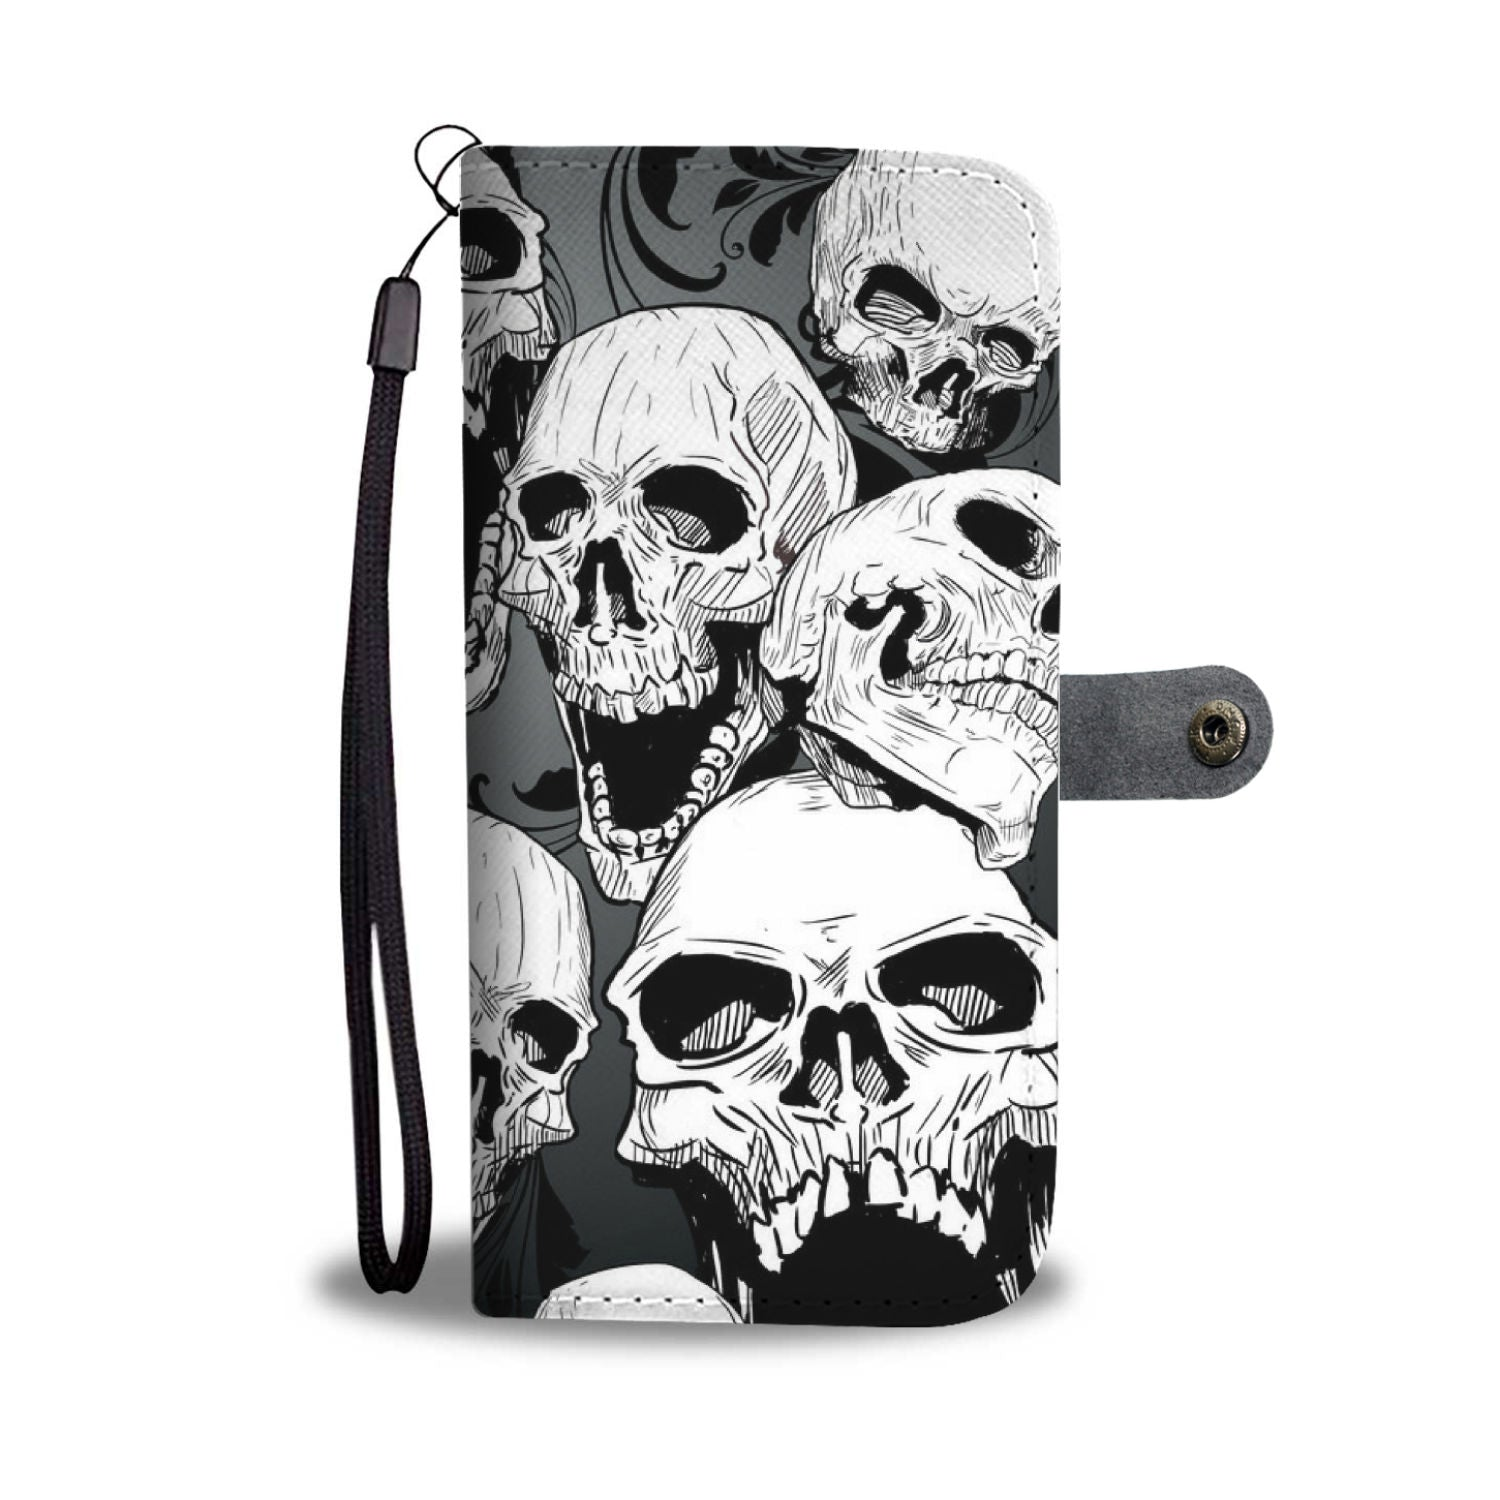 Angry Skulls - Wallet case - fastandtune